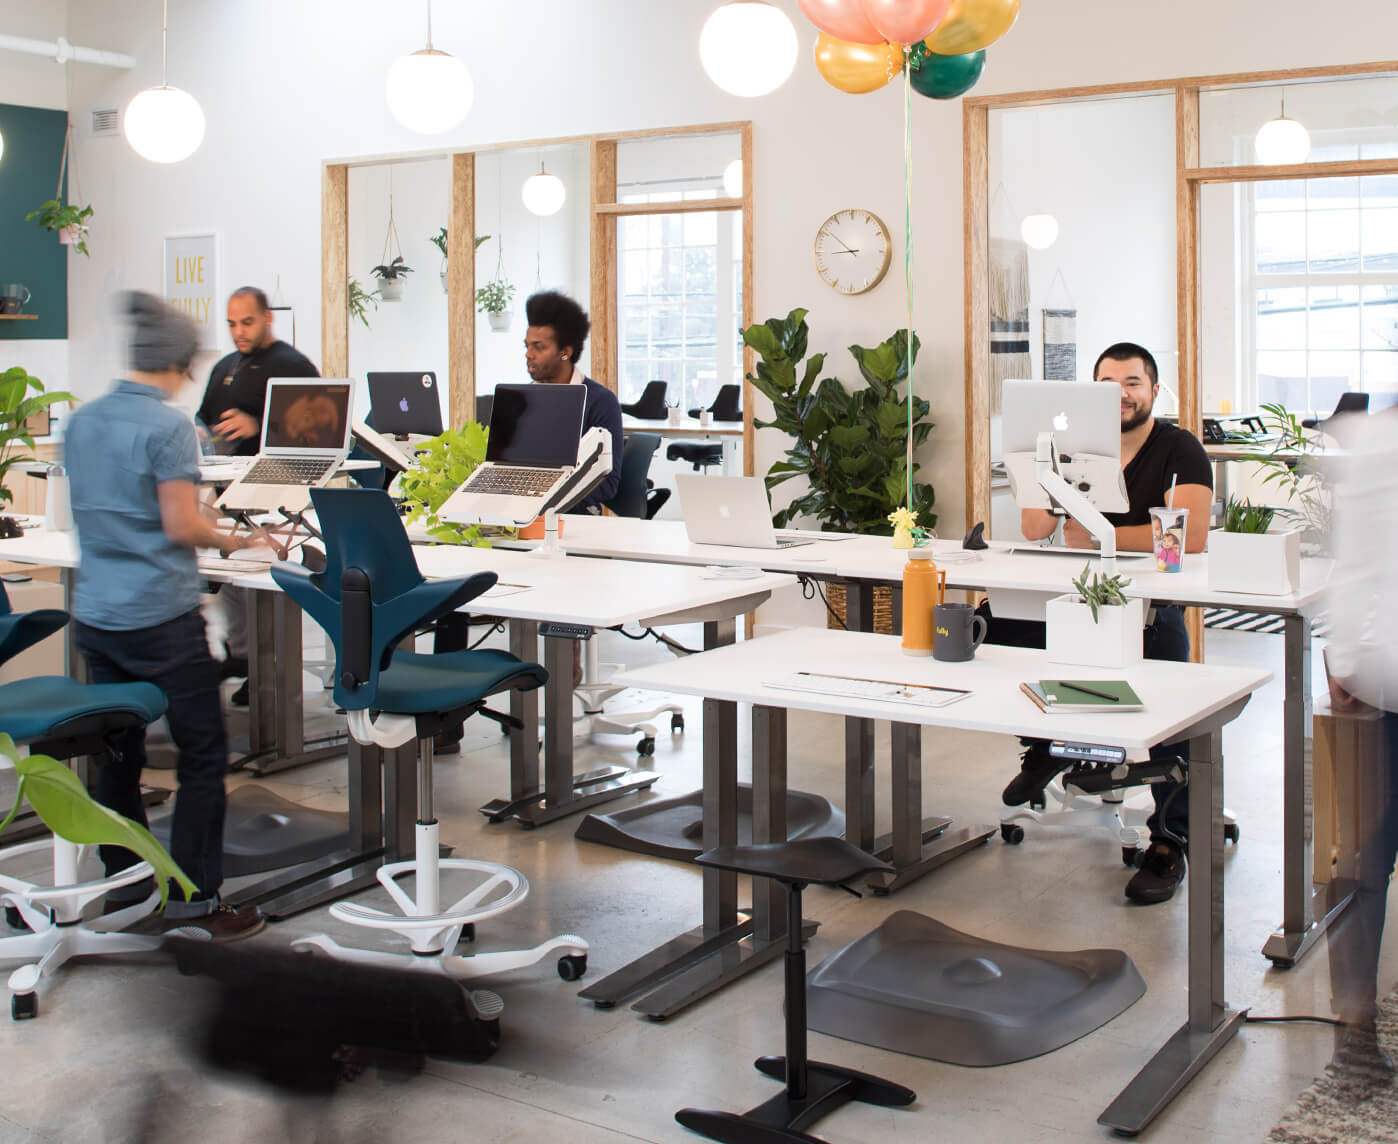 Fully office with Jarvis standing desks, Capisco Puls chairs, Tic Toc chairs, and Topo mats